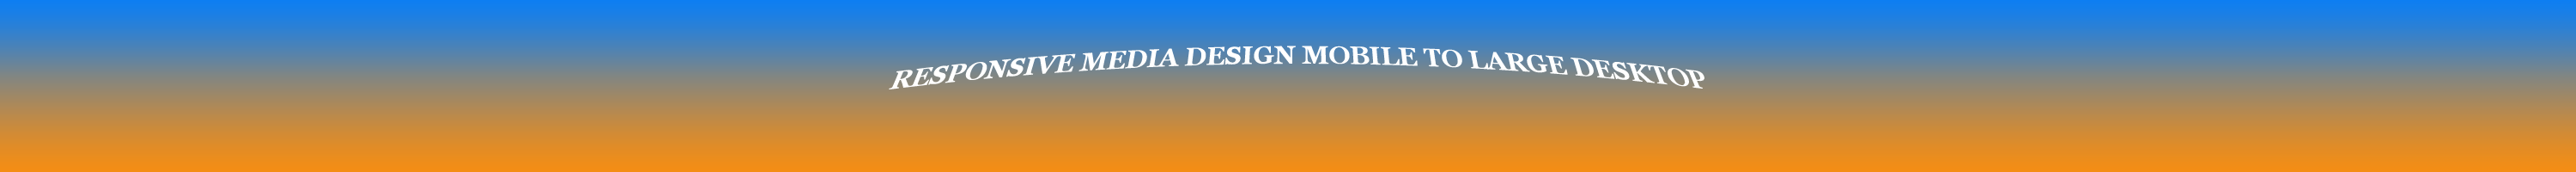 responsive media web design from smartphone to large desktop